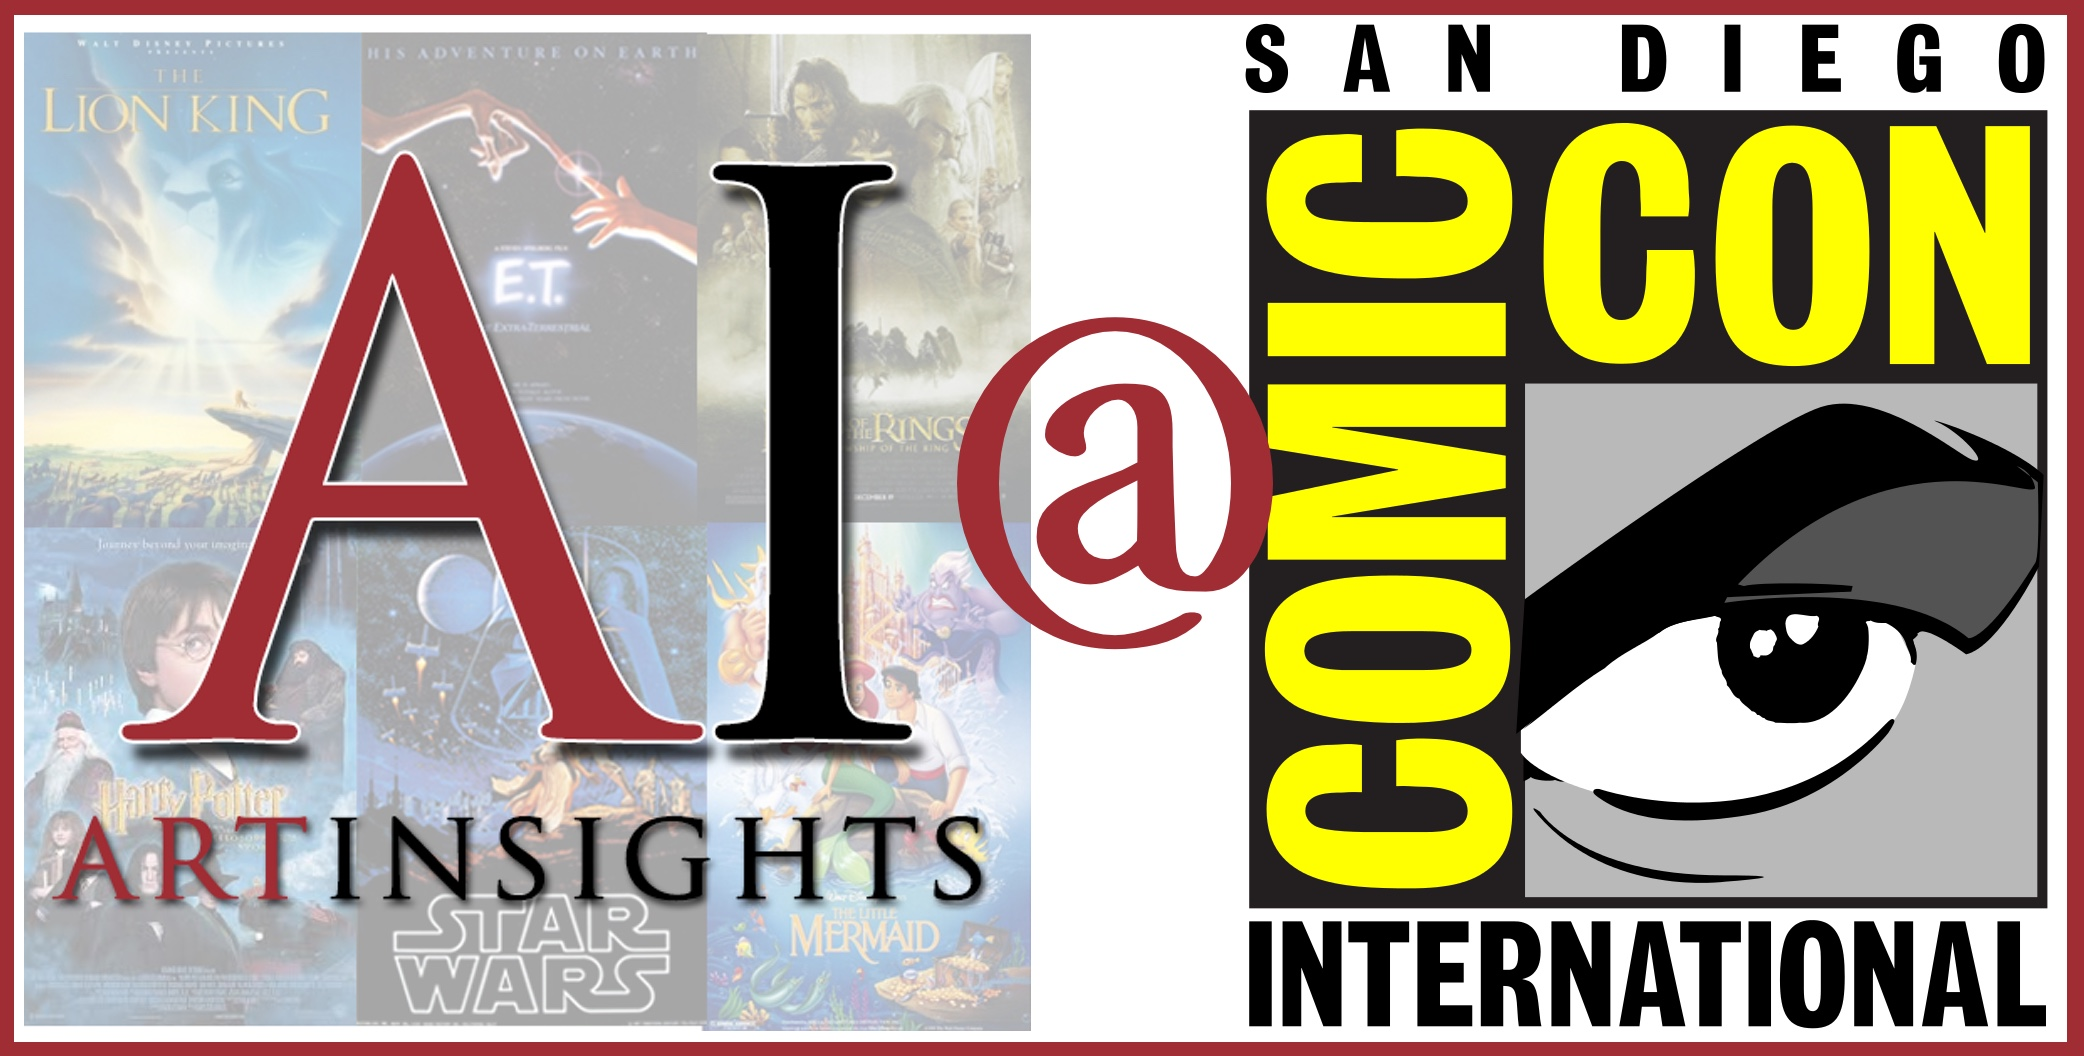 ArtInsights at Comic-Con International San Diego